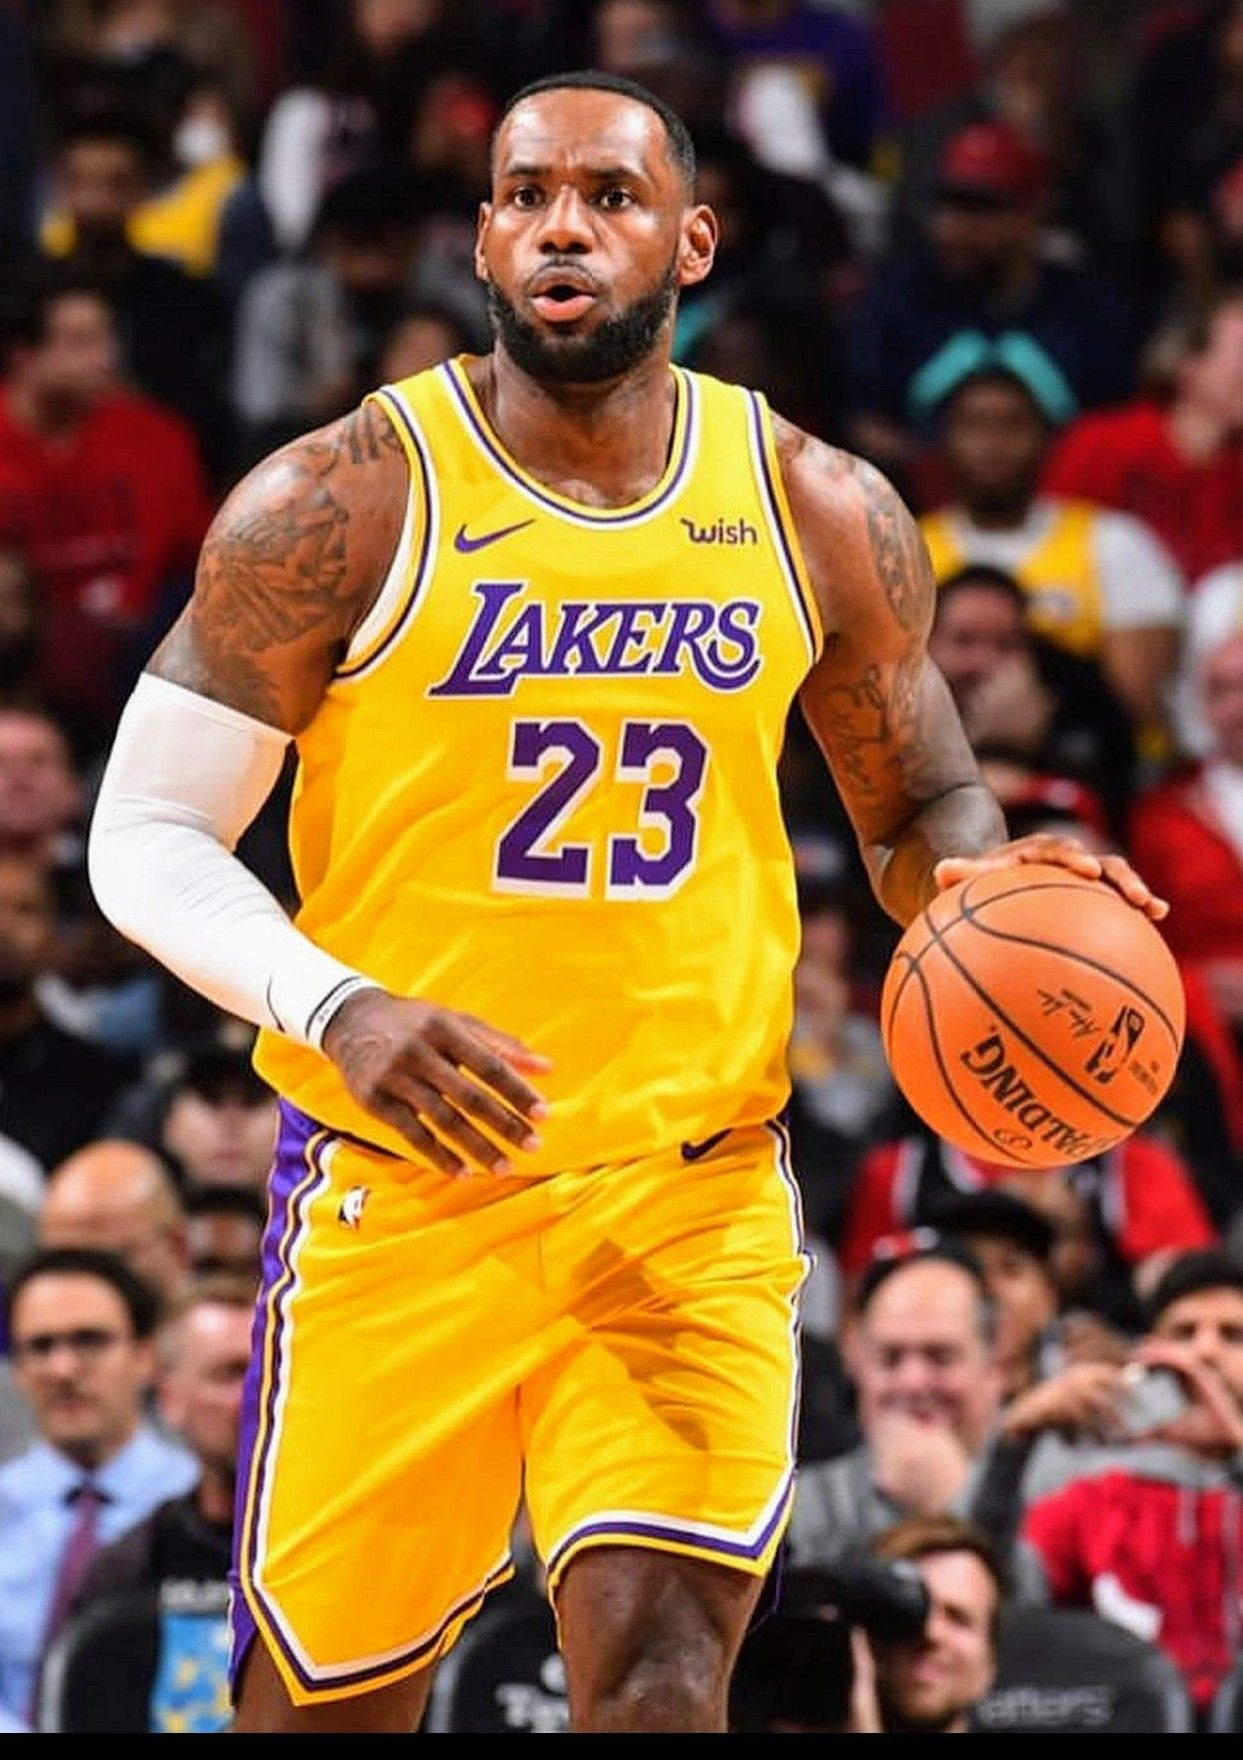 Pin by Eric Griffin on SHOWTIME LAKERS !!!! in 2020 Nba news